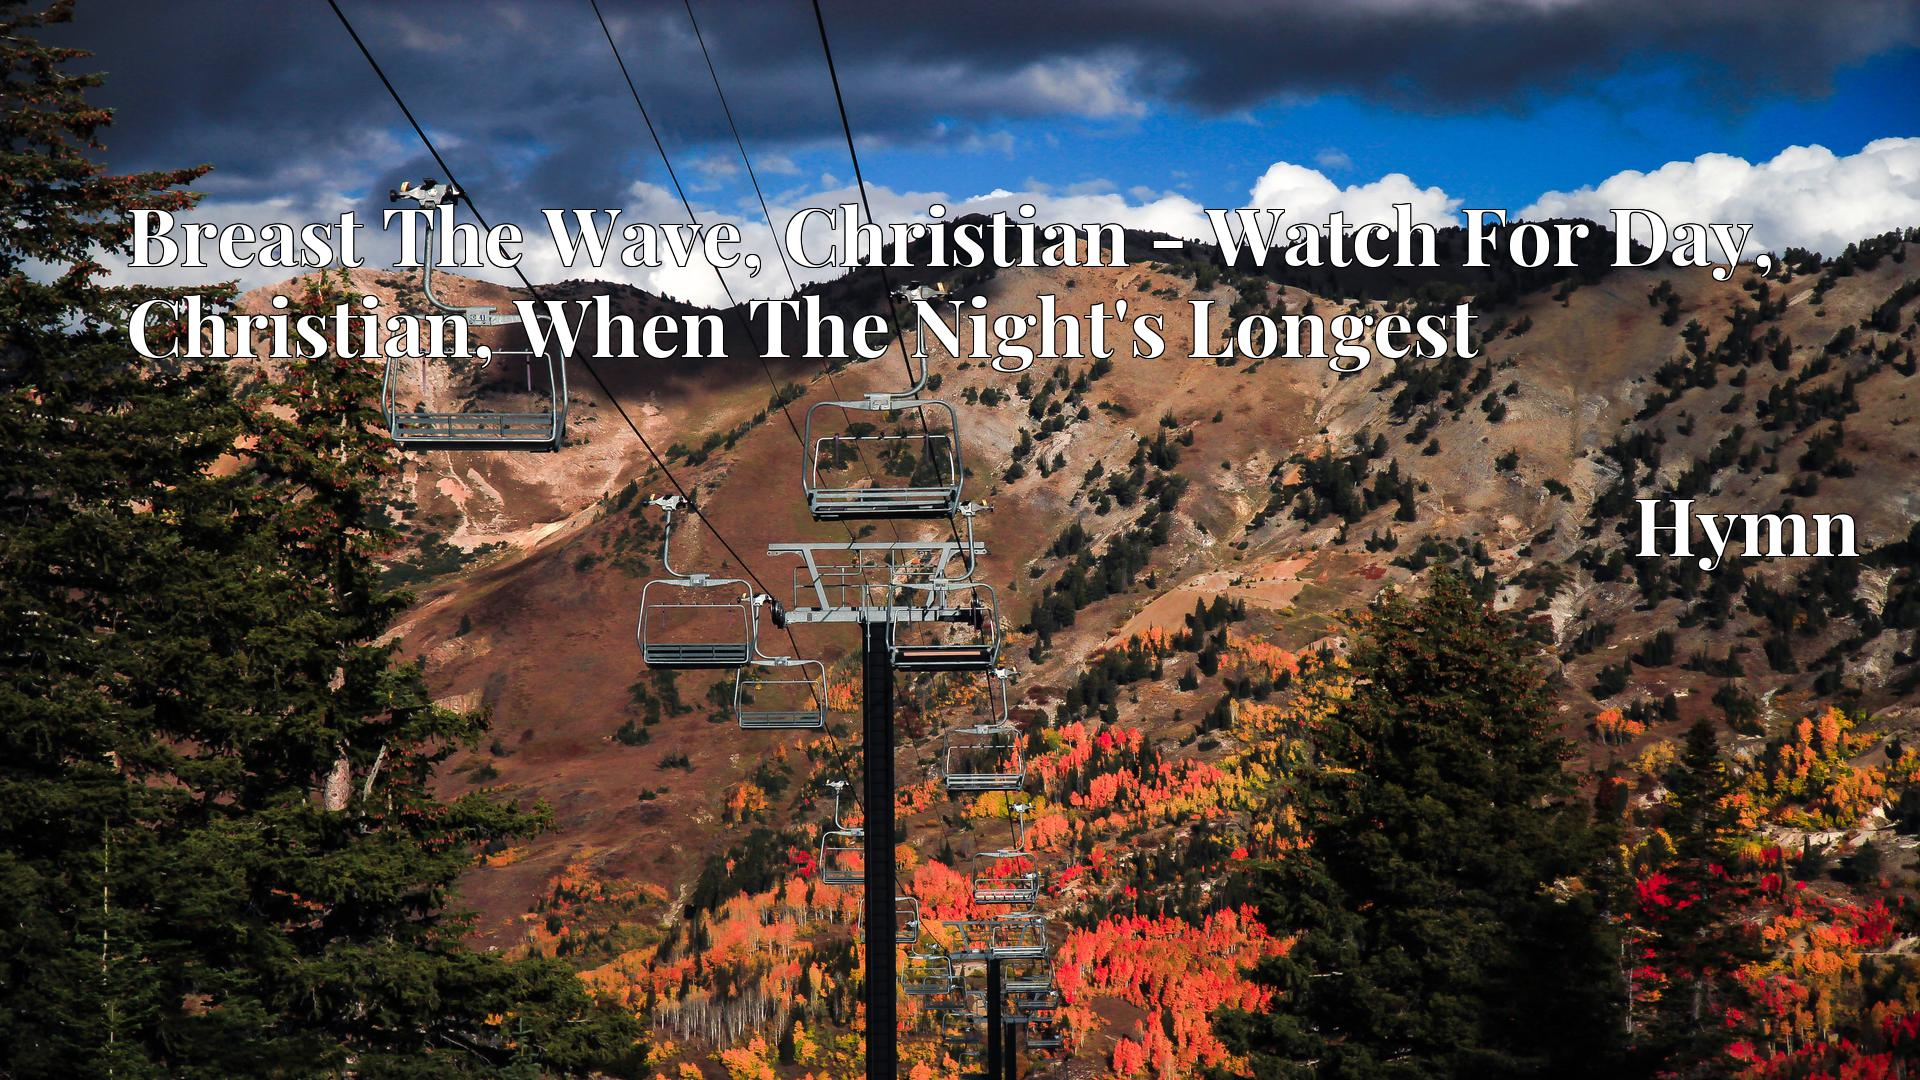 Breast The Wave, Christian - Watch For Day, Christian, When The Night's Longest - Hymn